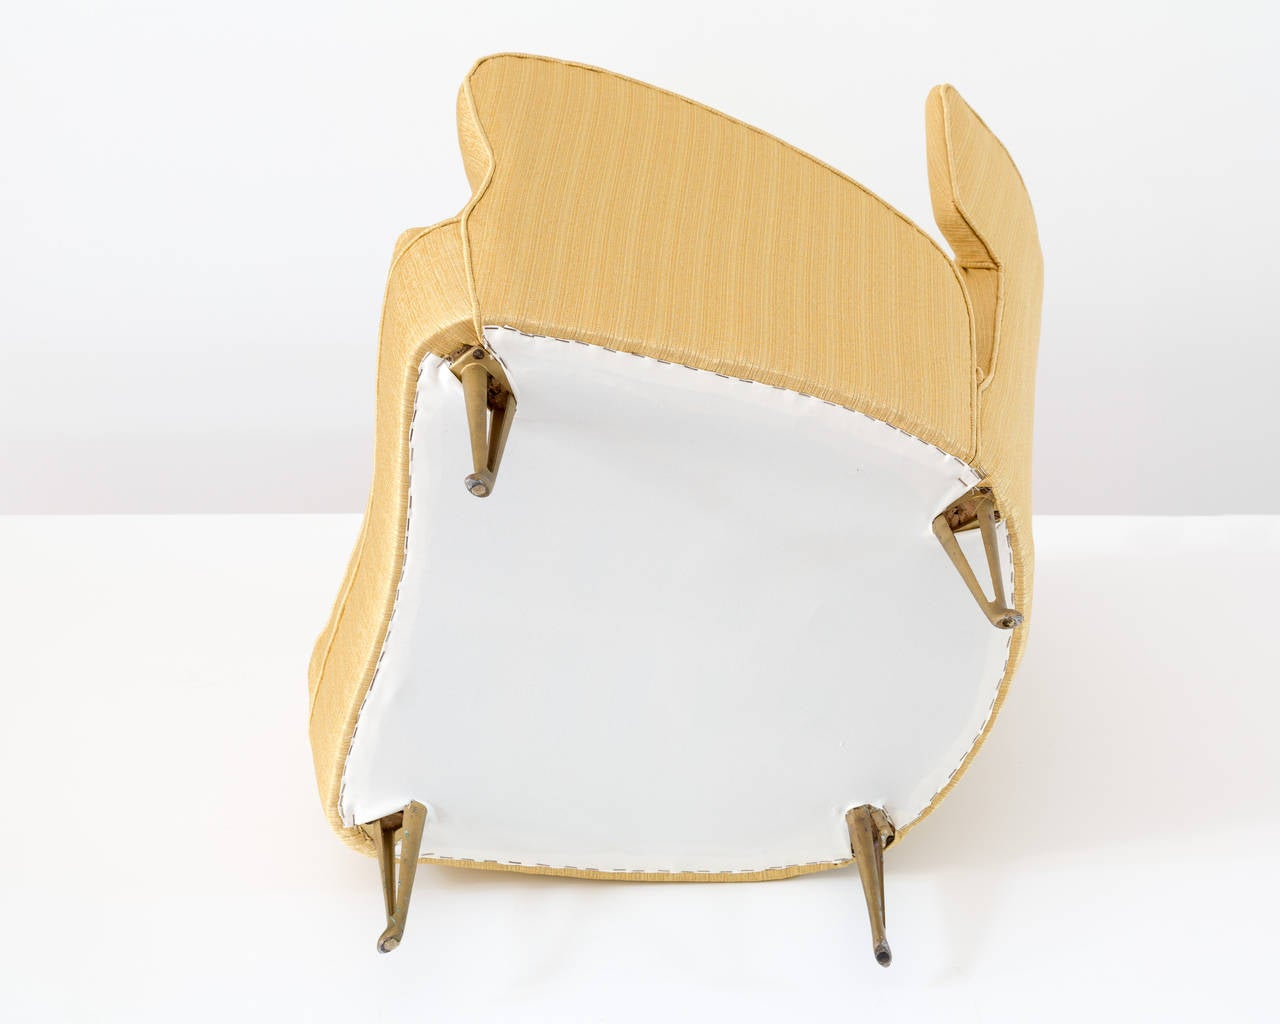 Elegant Italian Modern Yellow Armchair by Isa Bergamo, 1950 For Sale 3